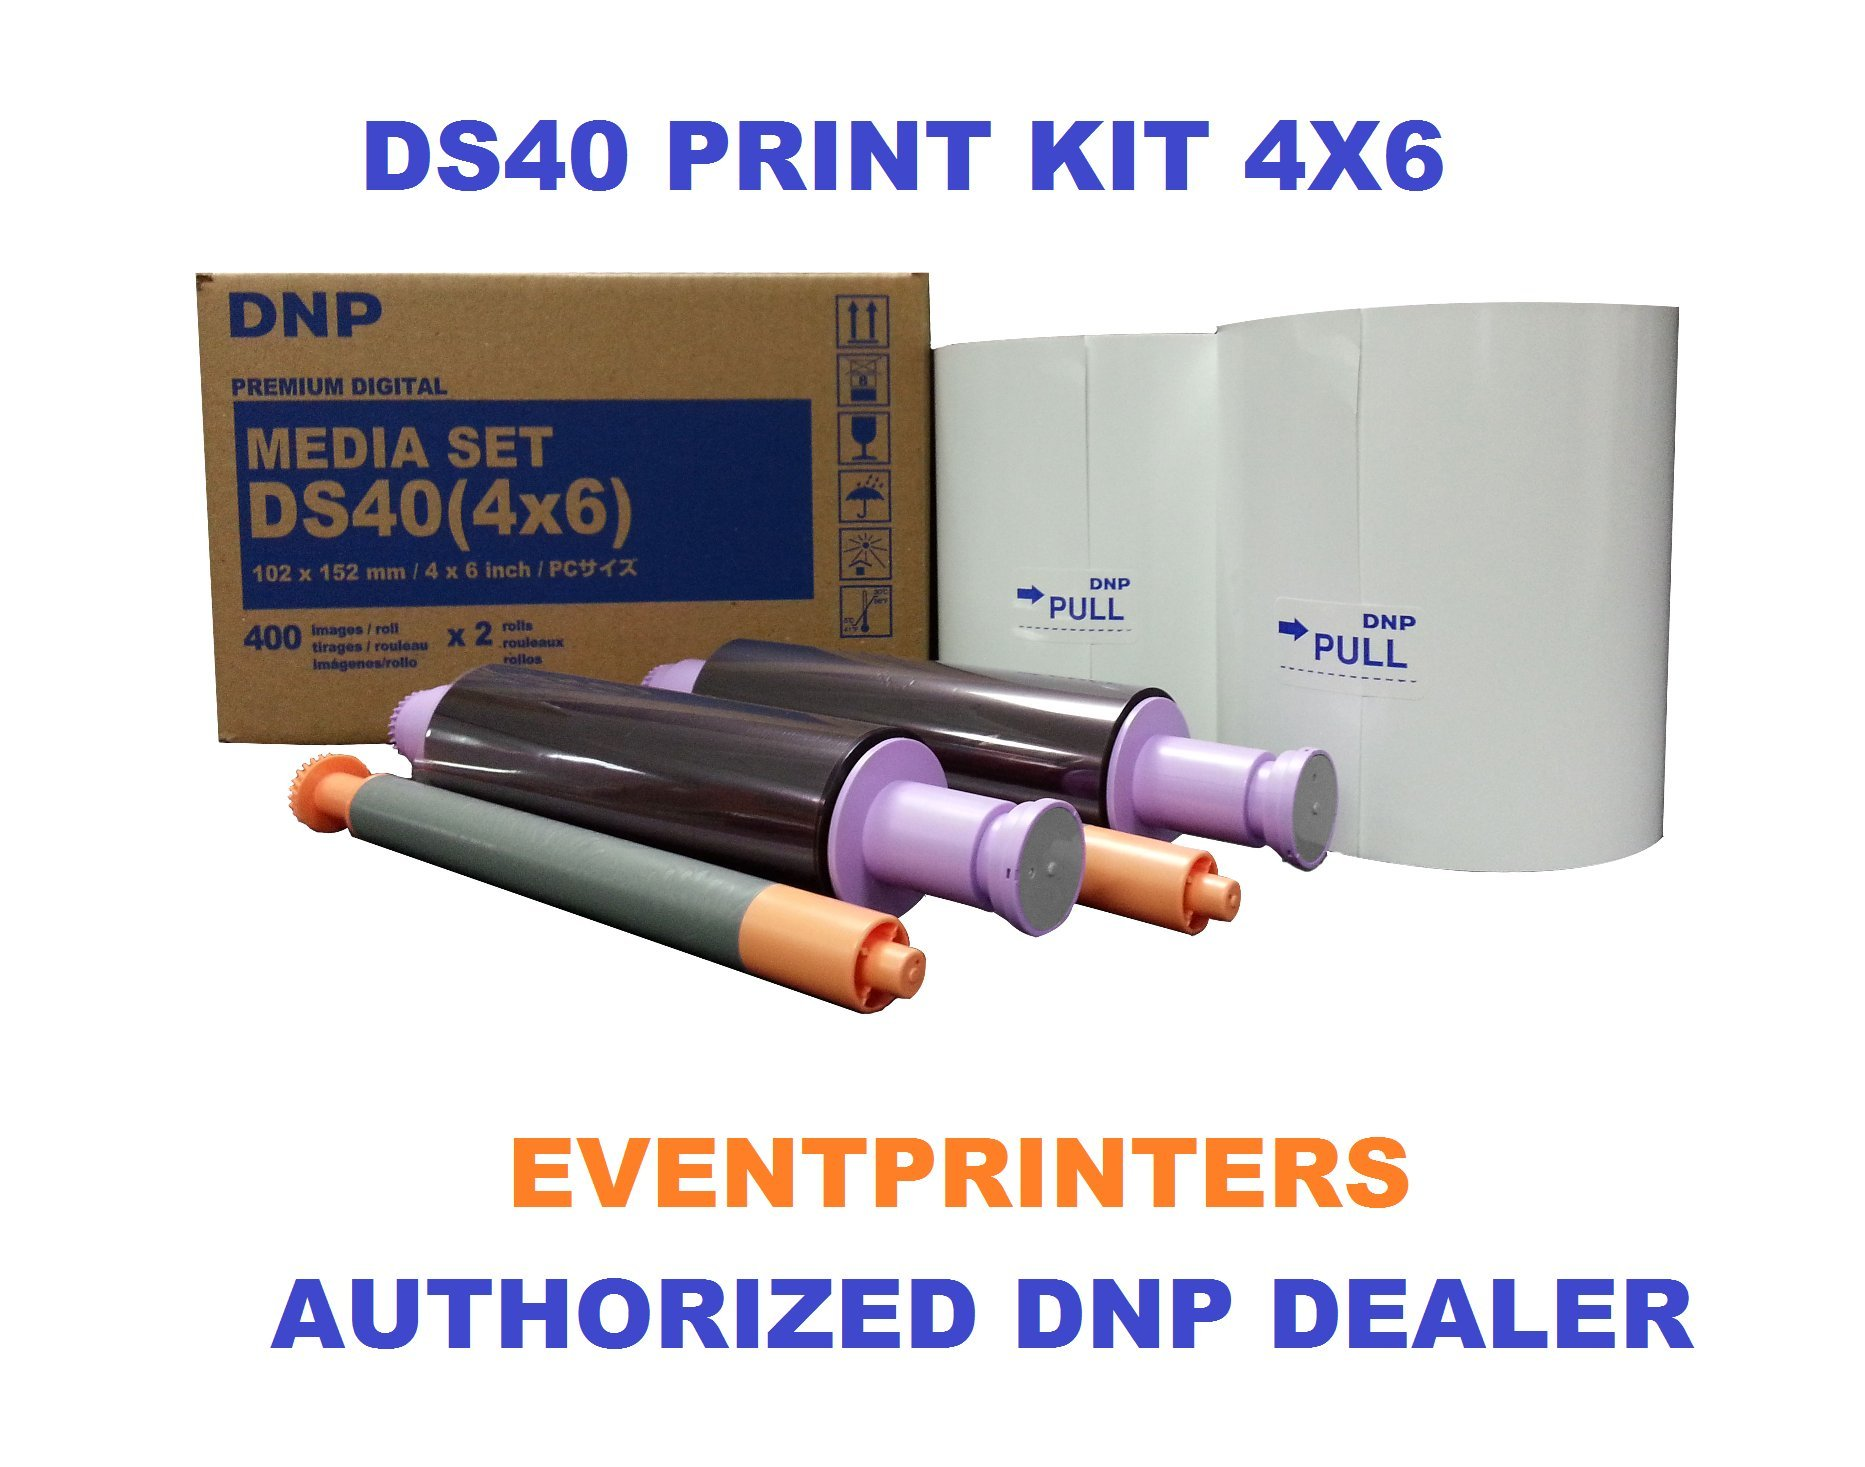 DS40 4x6'' Print Pack for use with DNP DS40 printer (800 total prints). Paper & Ribbon media kit. COMES WITH FREE SAMPLES OF OUR BEST SELLING PHOTO FOLDERS (EVENTPRINTERS BRAND). by DNP and Eventprinters